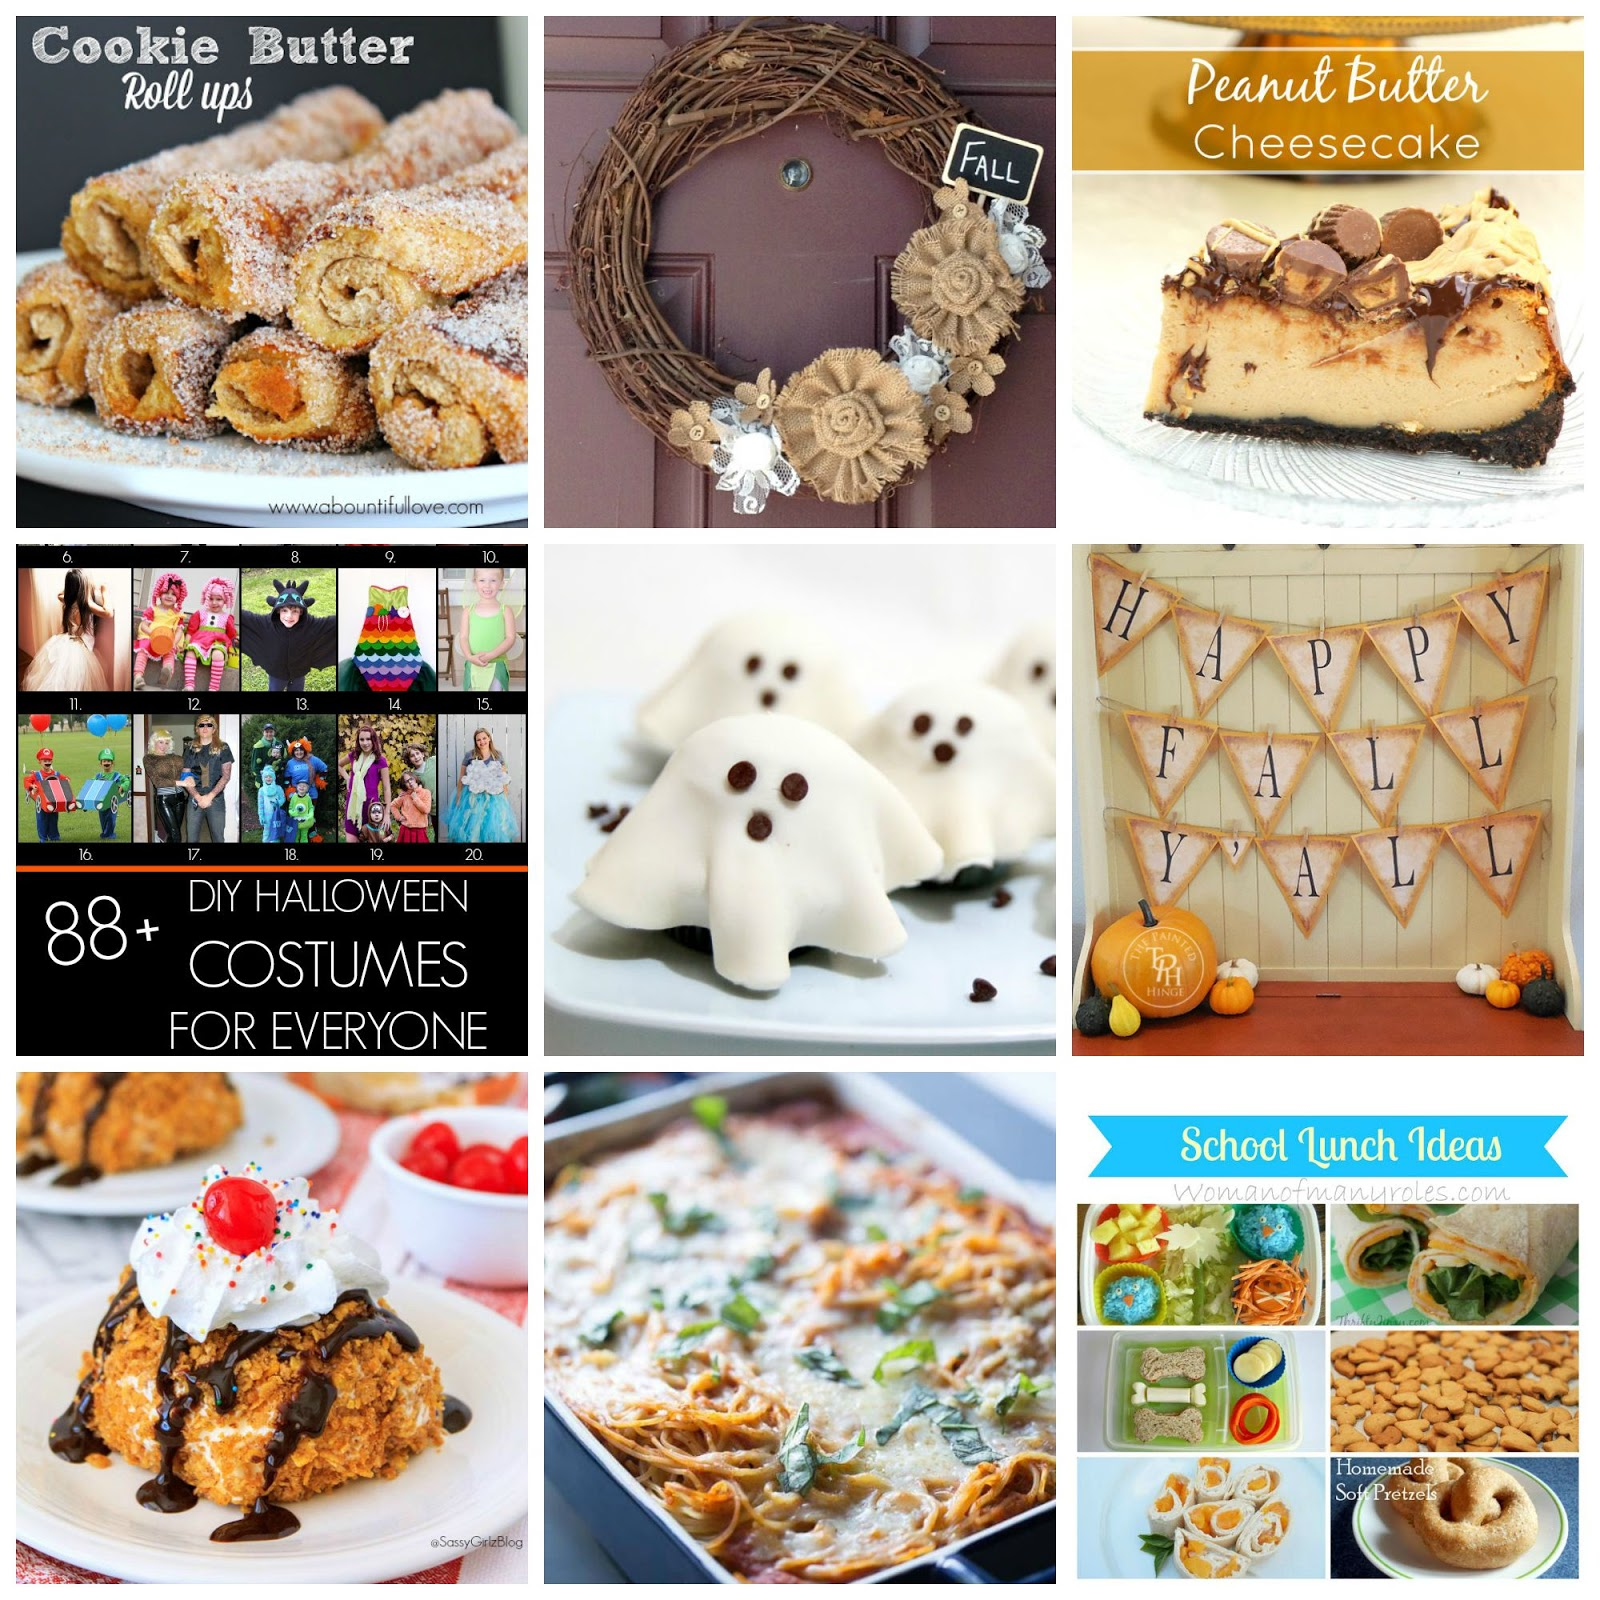 Kitchen Fun And Crafty Friday Link Party 167: Kitchen Fun And Crafty Friday Link Party #180